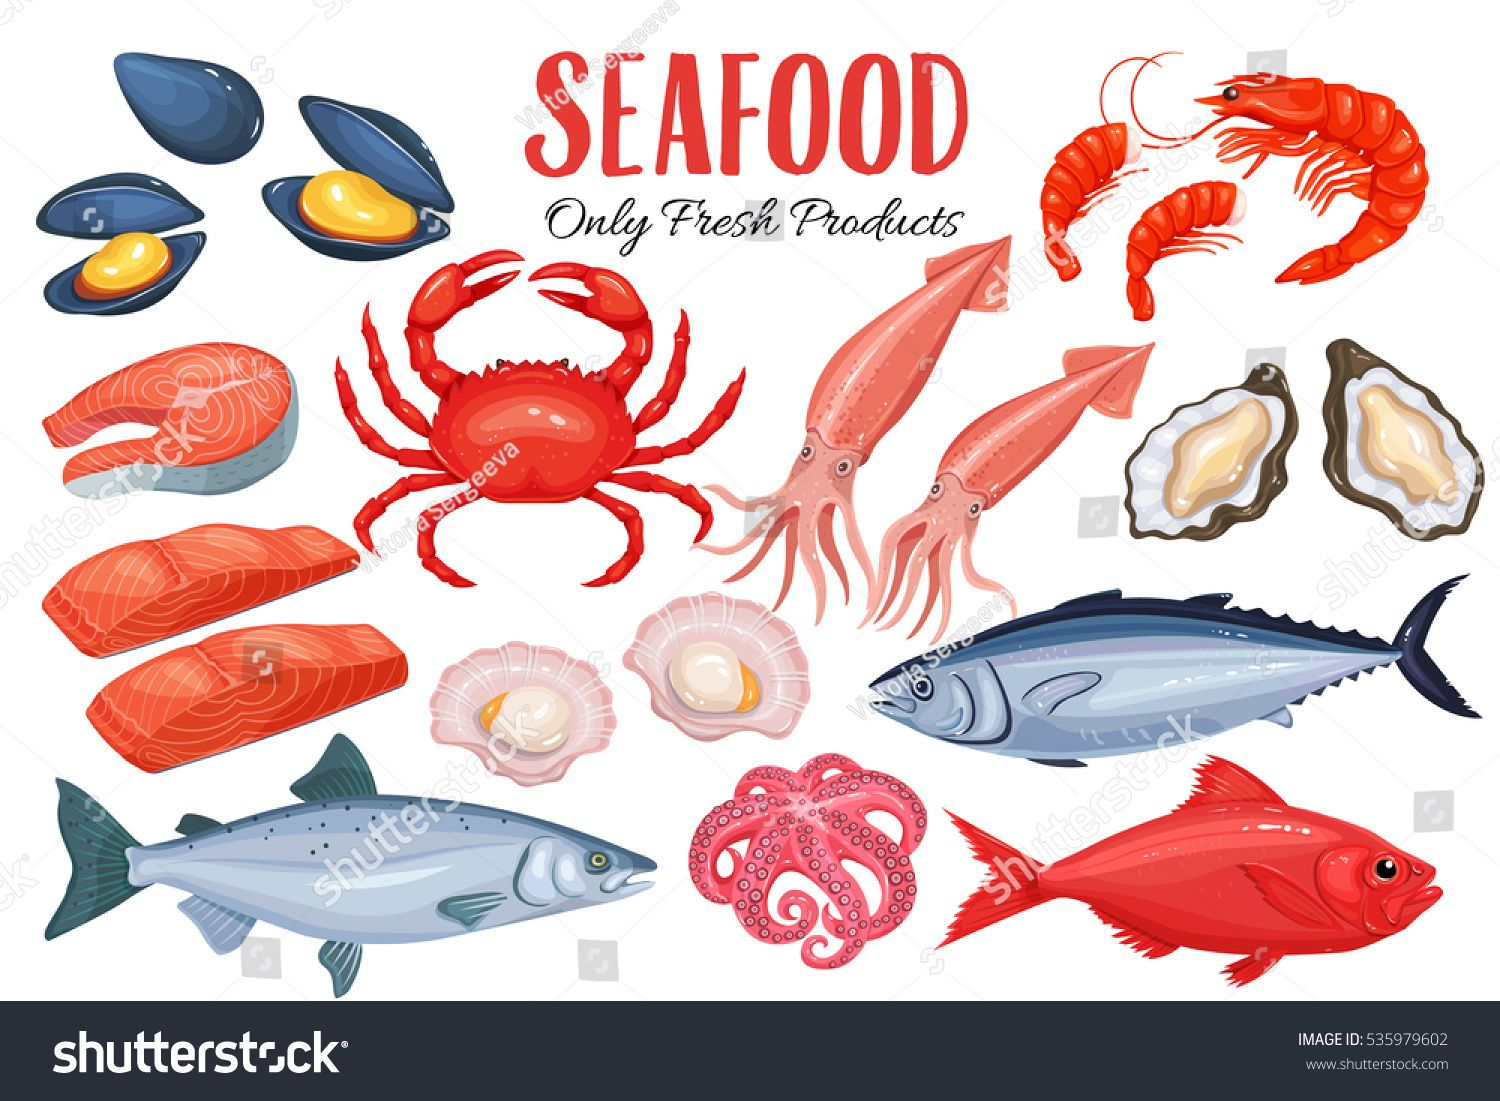 Seafood In Cartoon Style Vector Icons Mussel Fish Salmon Shrimp Squid Octopus Scallop Lobster Craps Mollusk Oyste Cartoon Styles Cartoon Fish Seafood